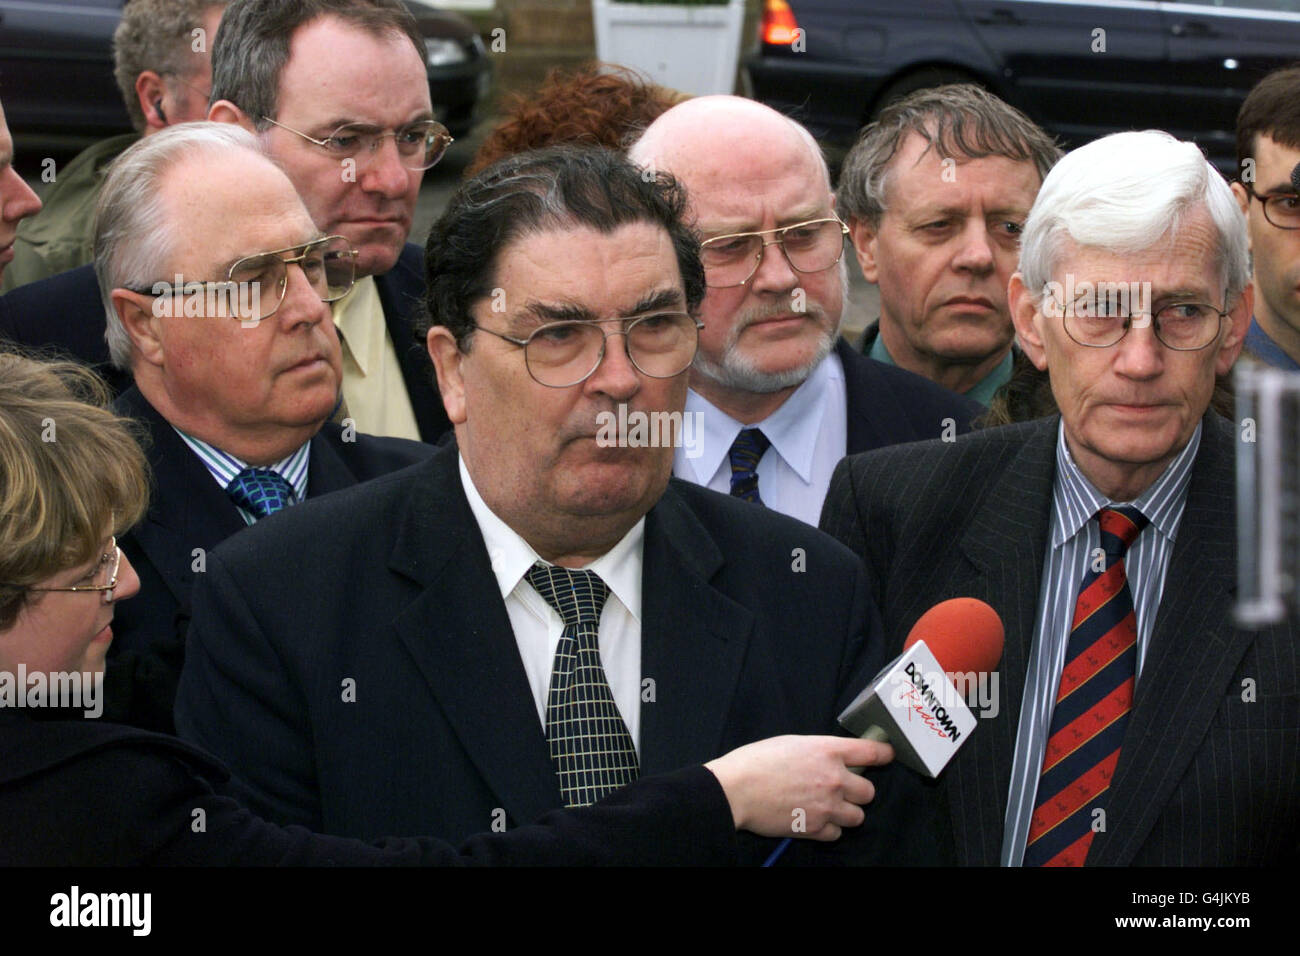 Hillsborough/Political Talks 3 - Stock Image